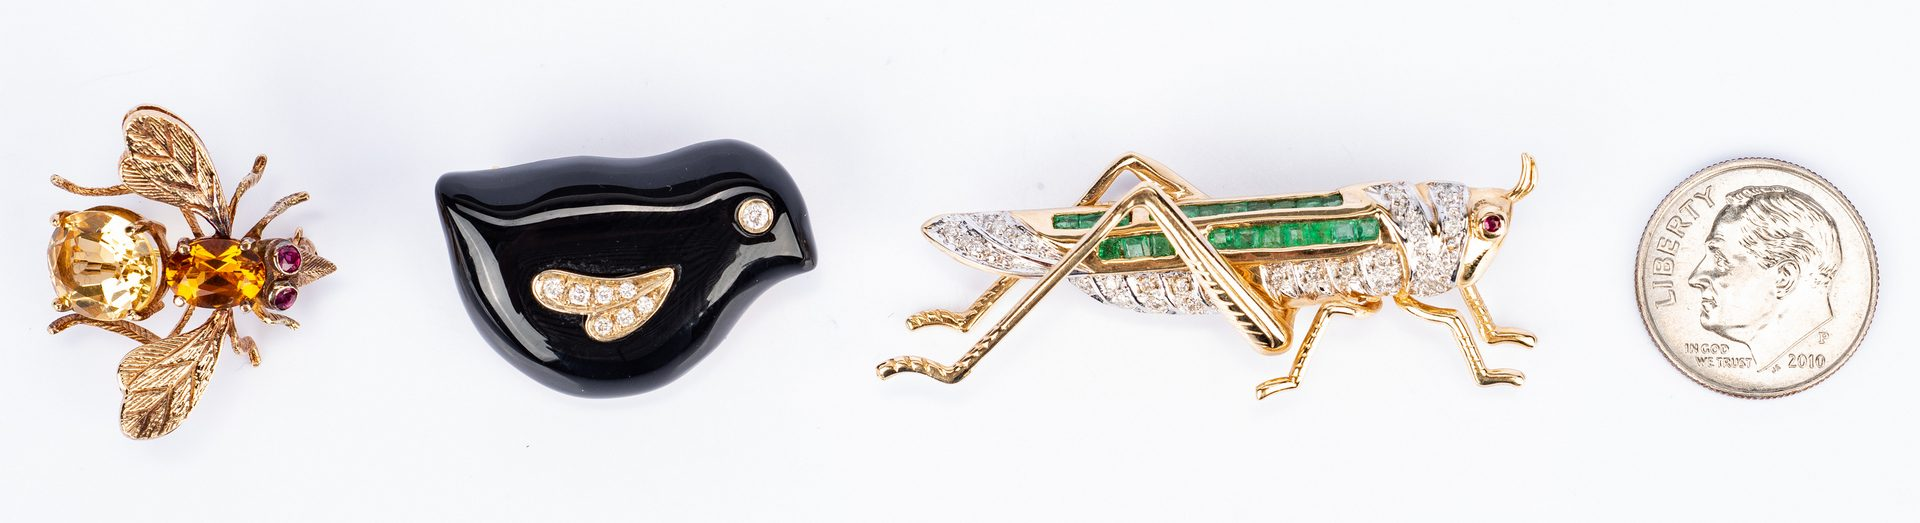 Lot 438: 3 Gemstone Insect and Bird Pins